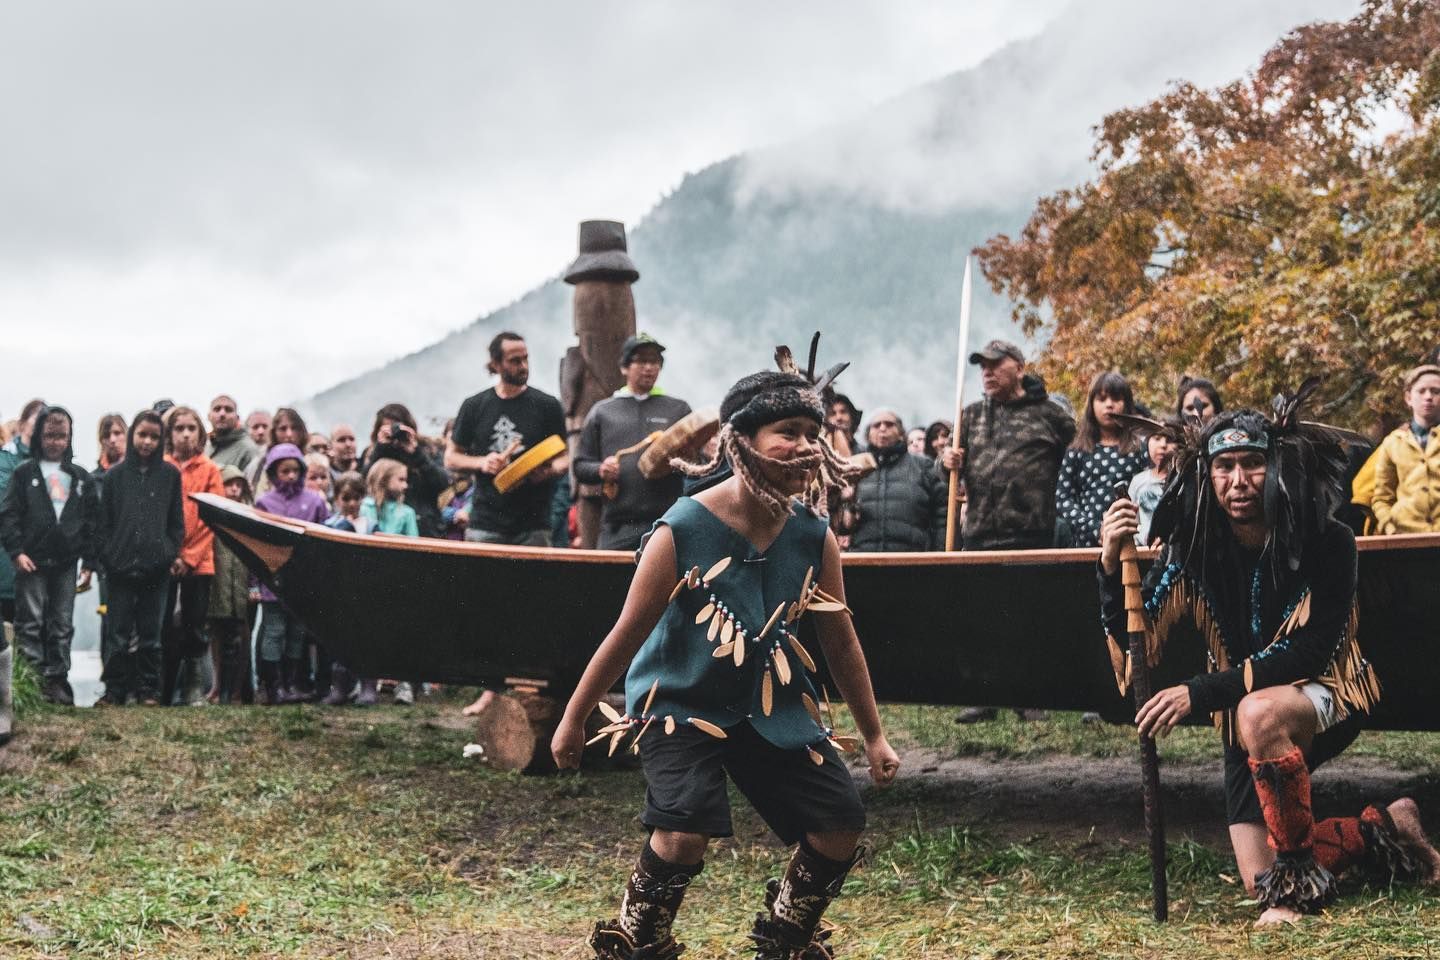 Cowichan Nation ceremonial dancer among people watching and misty covered mountain in the background